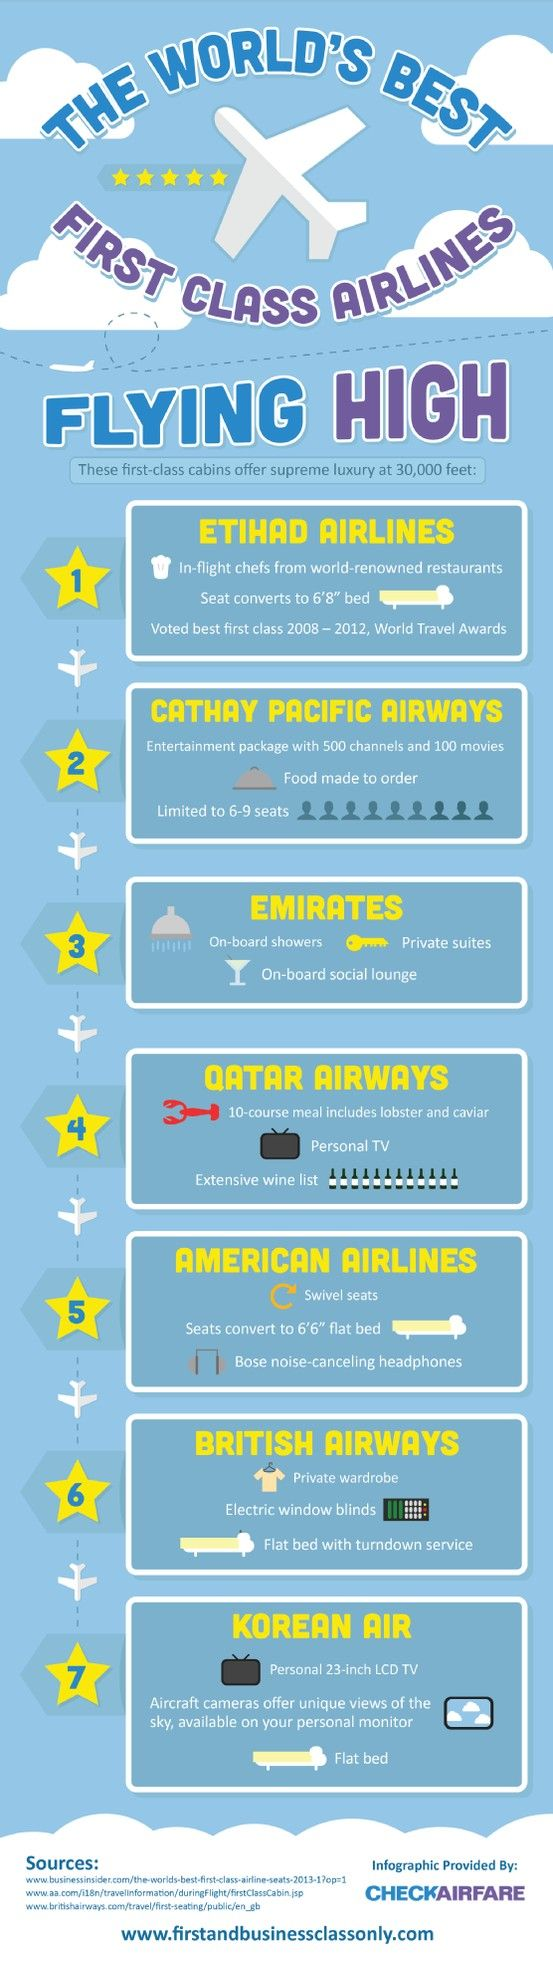 Flying first class means experiencing supreme luxury at 30,000 feet. For example, American Airlines offers swivel seats, Bose noise-cancelling headphones, and chairs that turn into flat beds. Learn more by reading through this infographic. Source: http://www.firstandbusinessclassonly.com/678990/2013/04/10/the-worlds-best-first-class-airlines-infographic.html